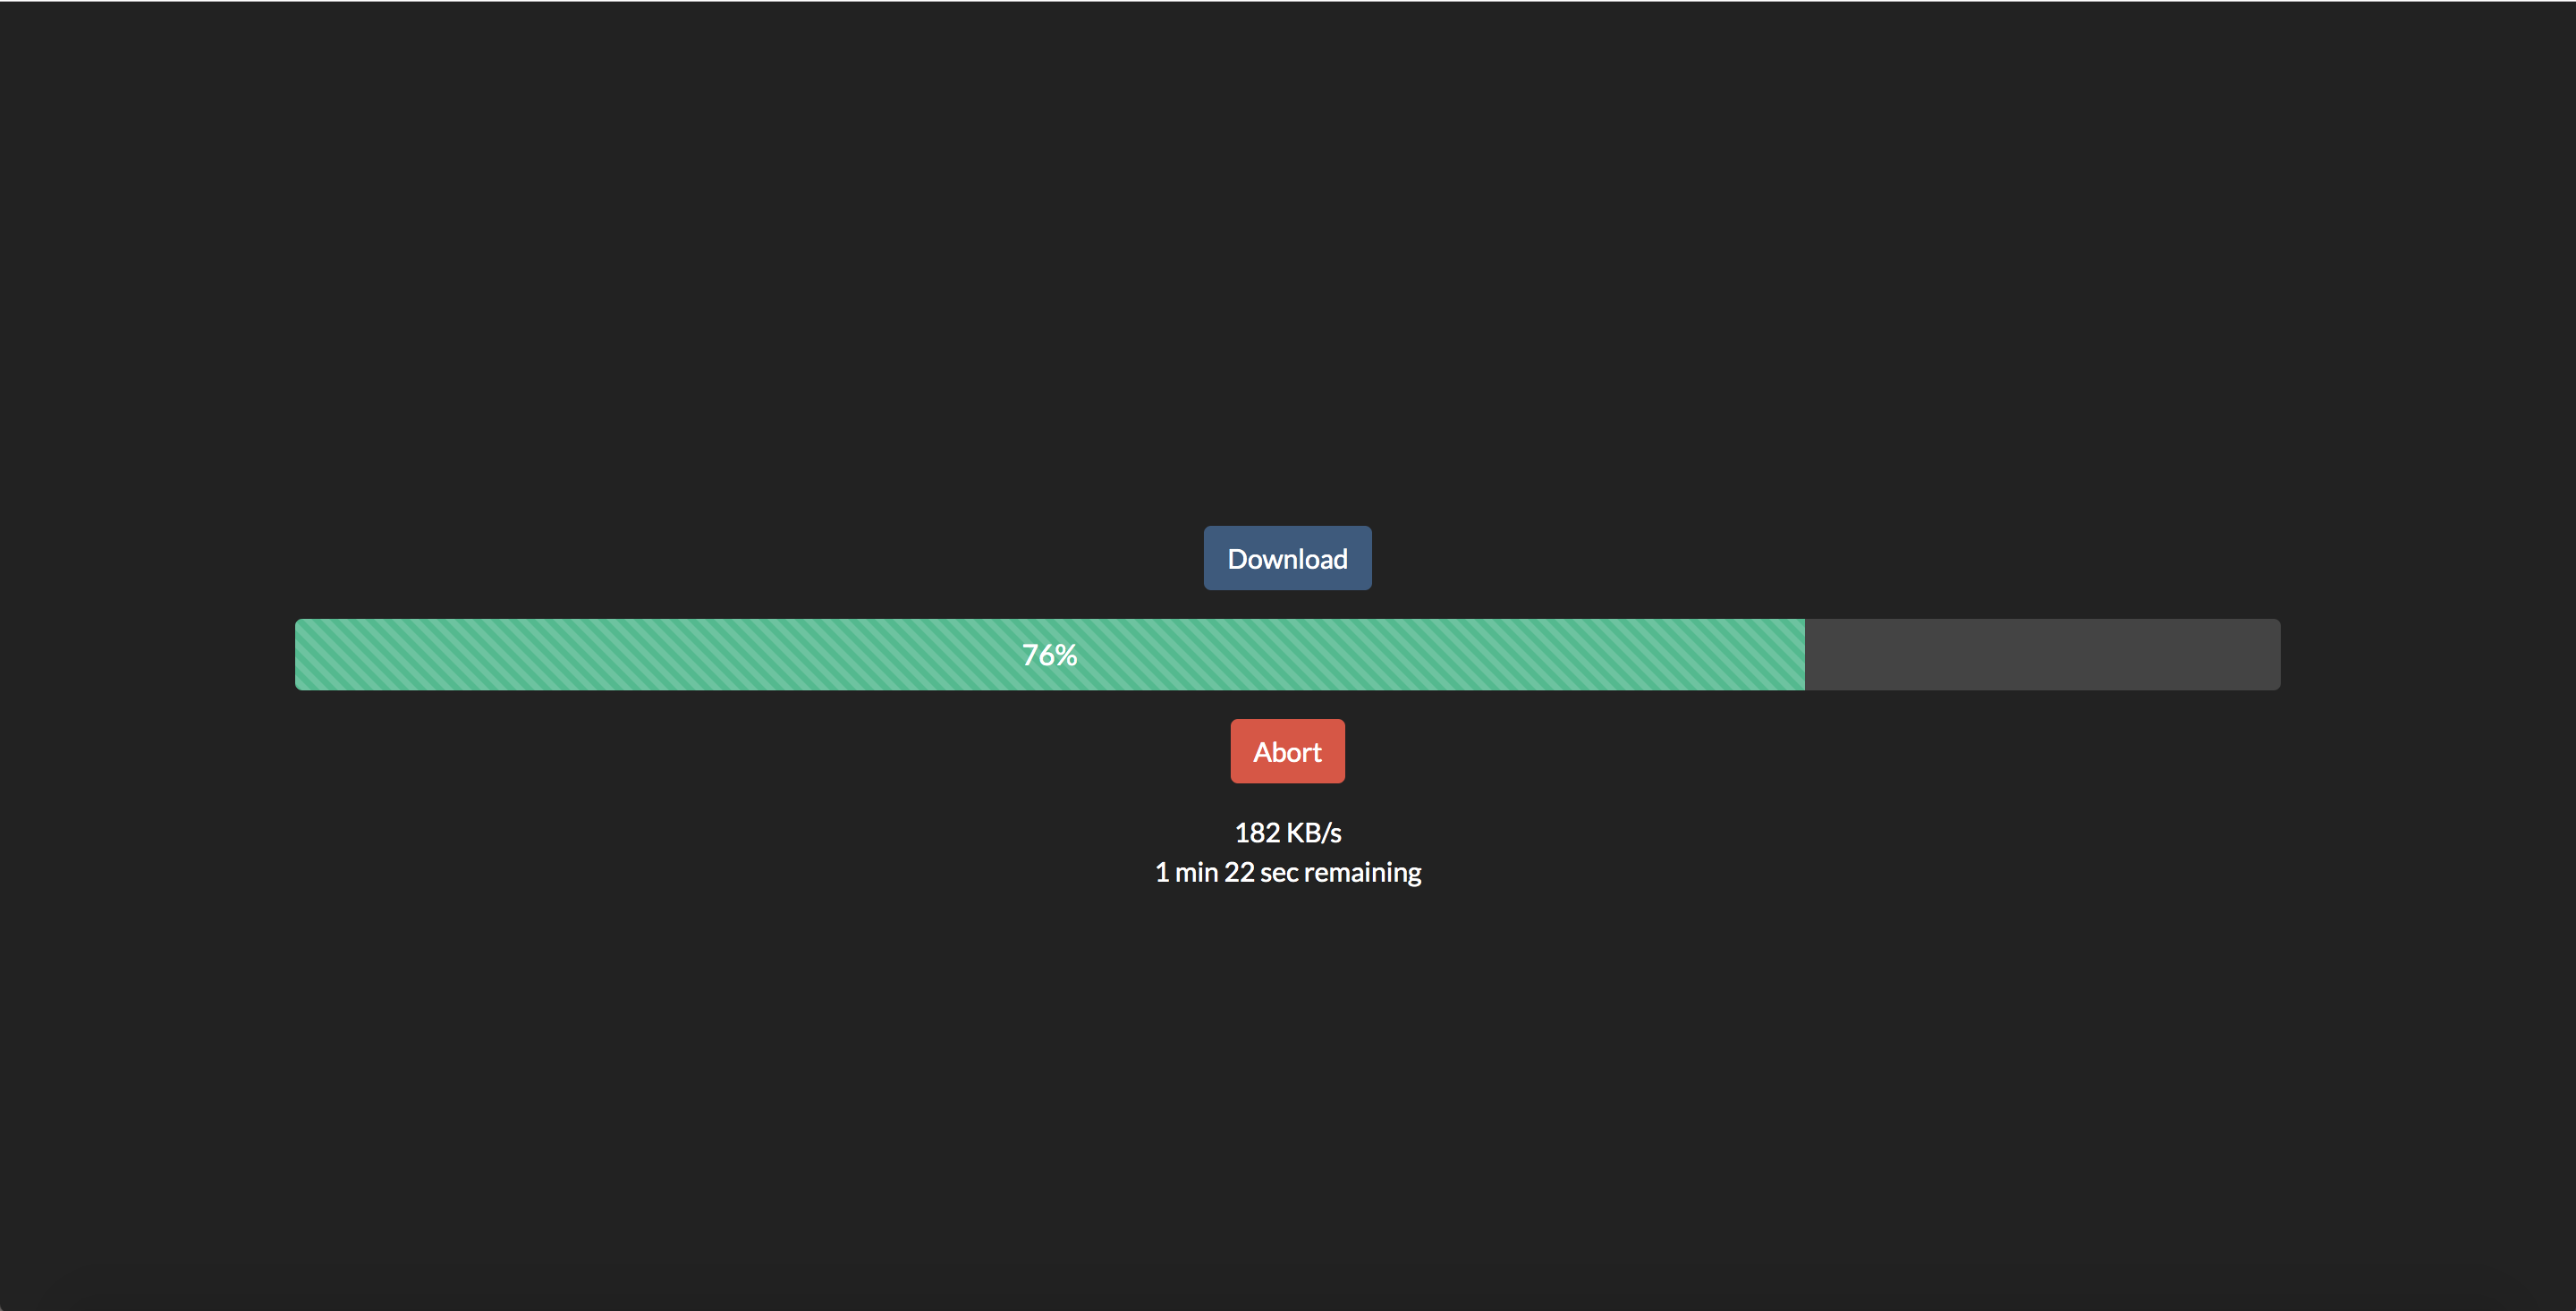 Show progress of download with remaining time - Javascript